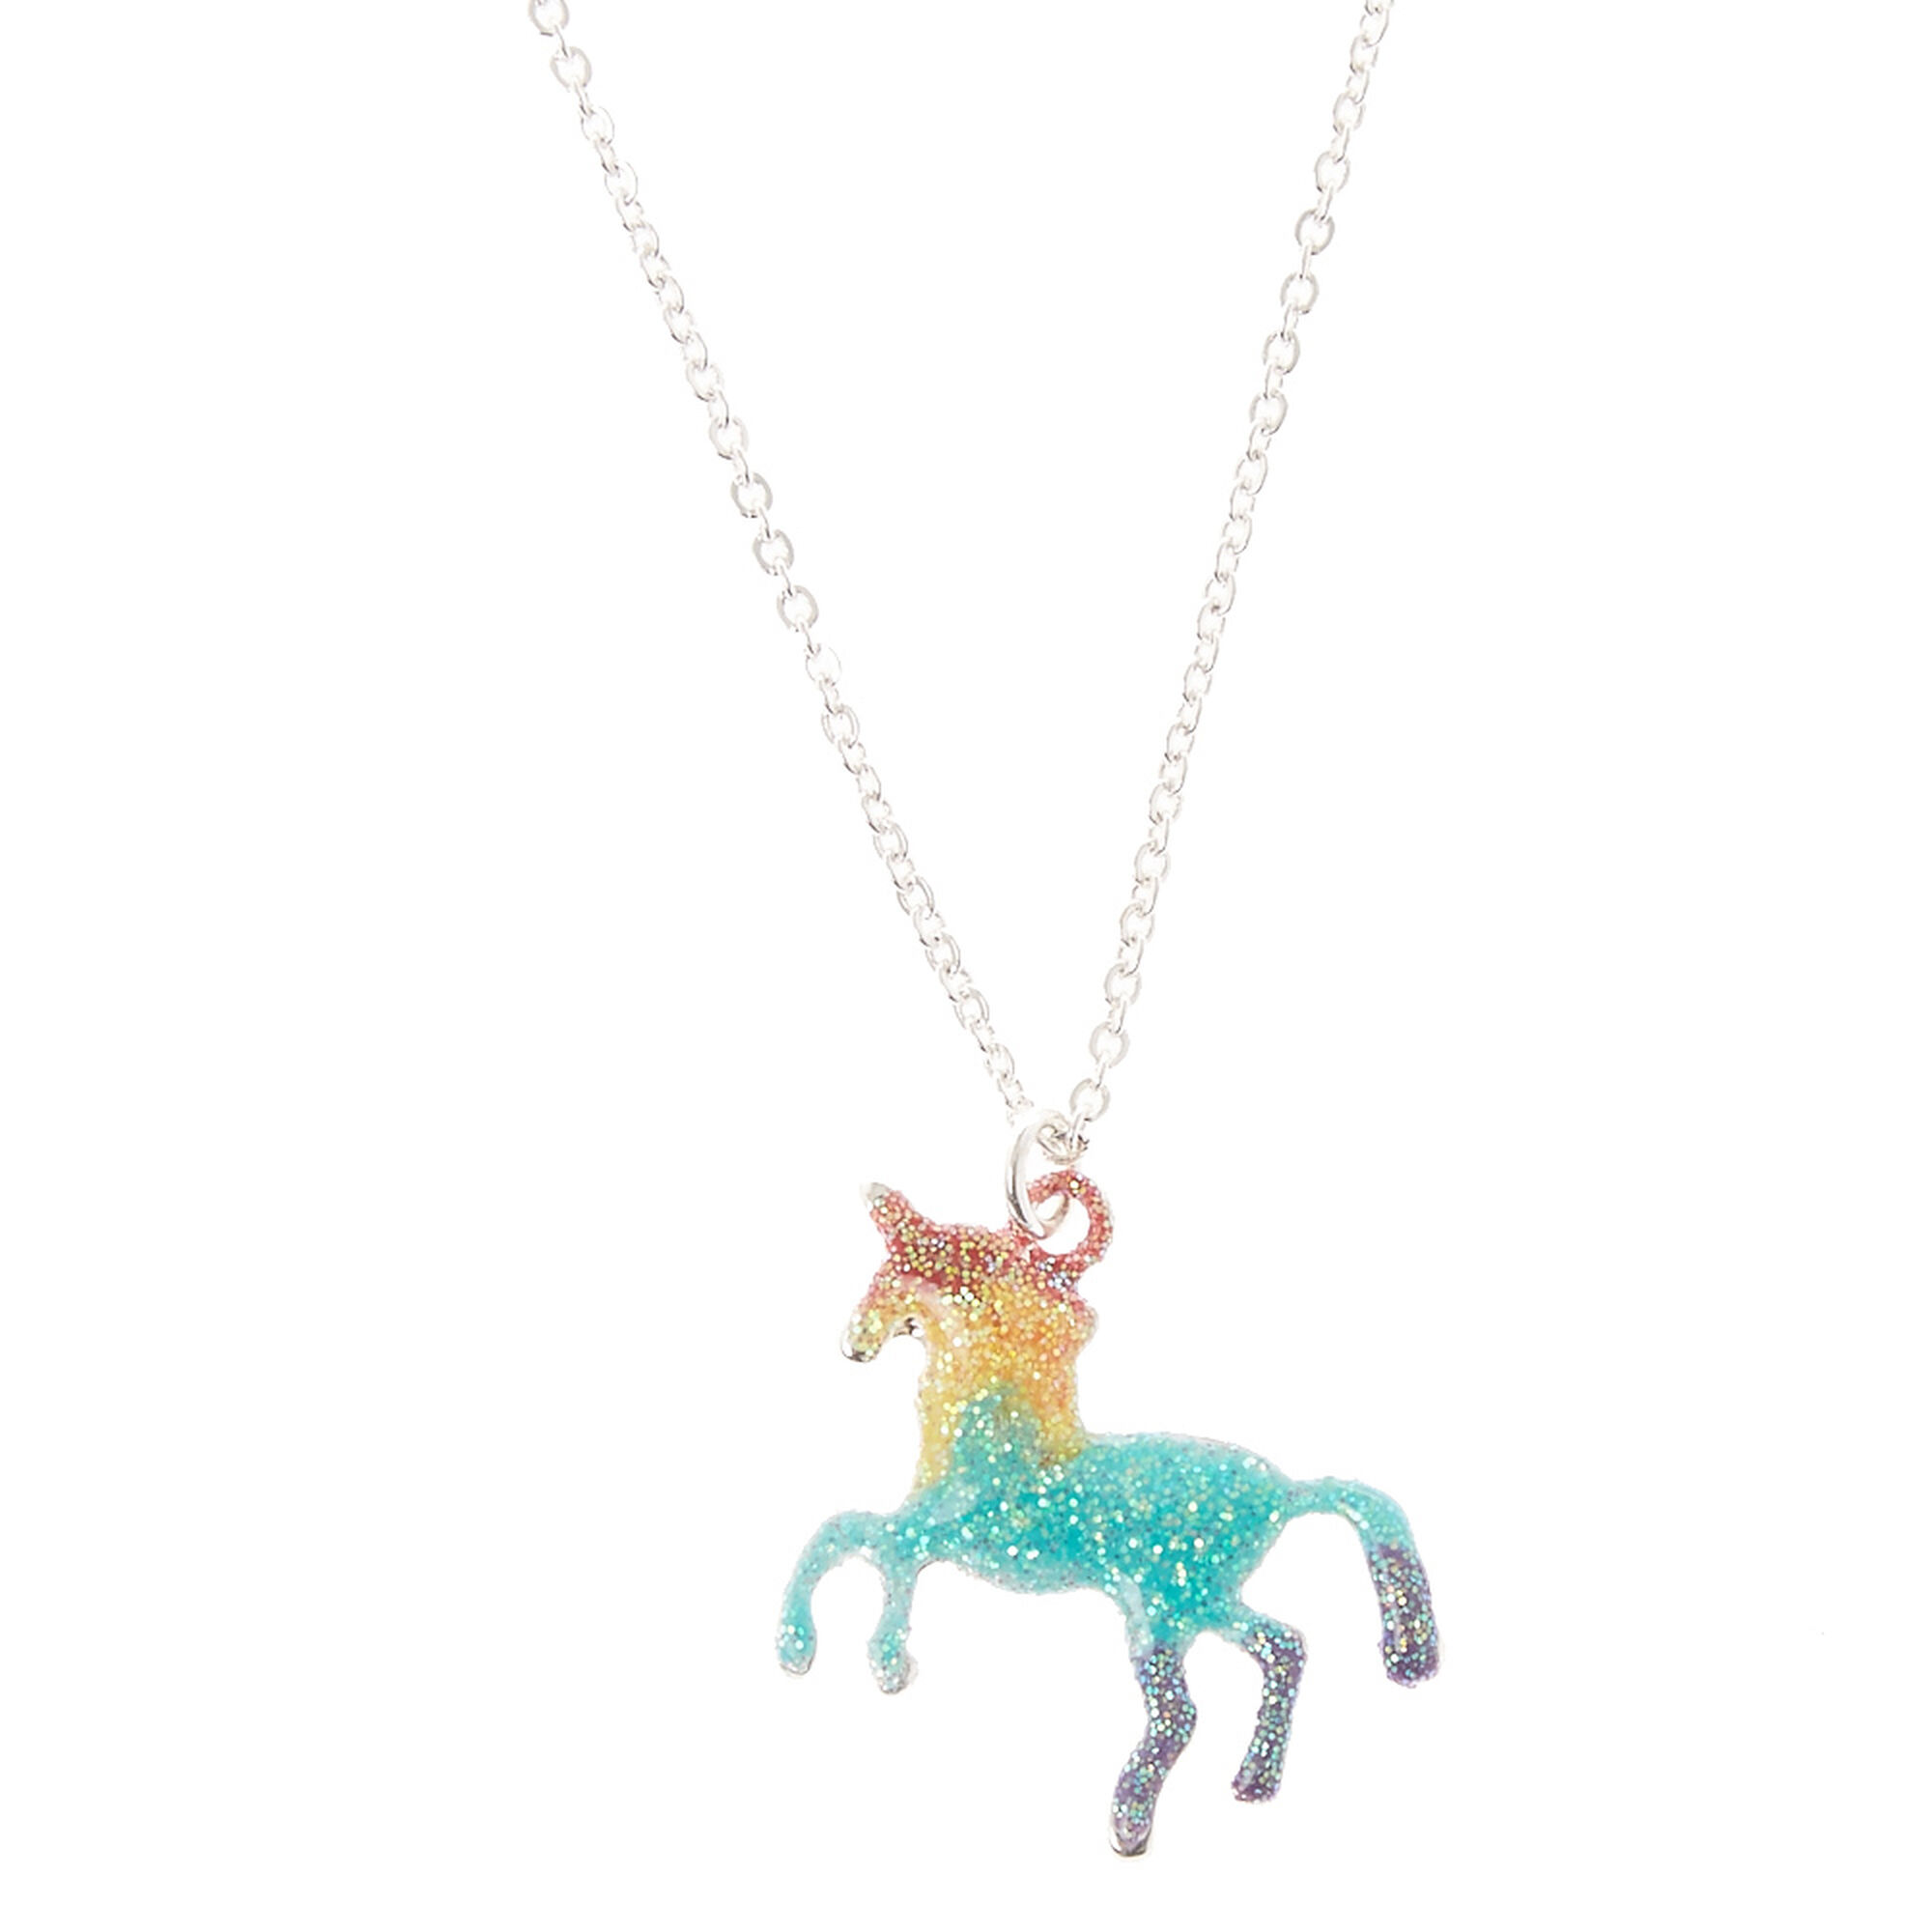 unicorn plated friends wholesale pendants white gold colorful accessories for chain men bf heart best gift product kids silver necklace pendant jewelry